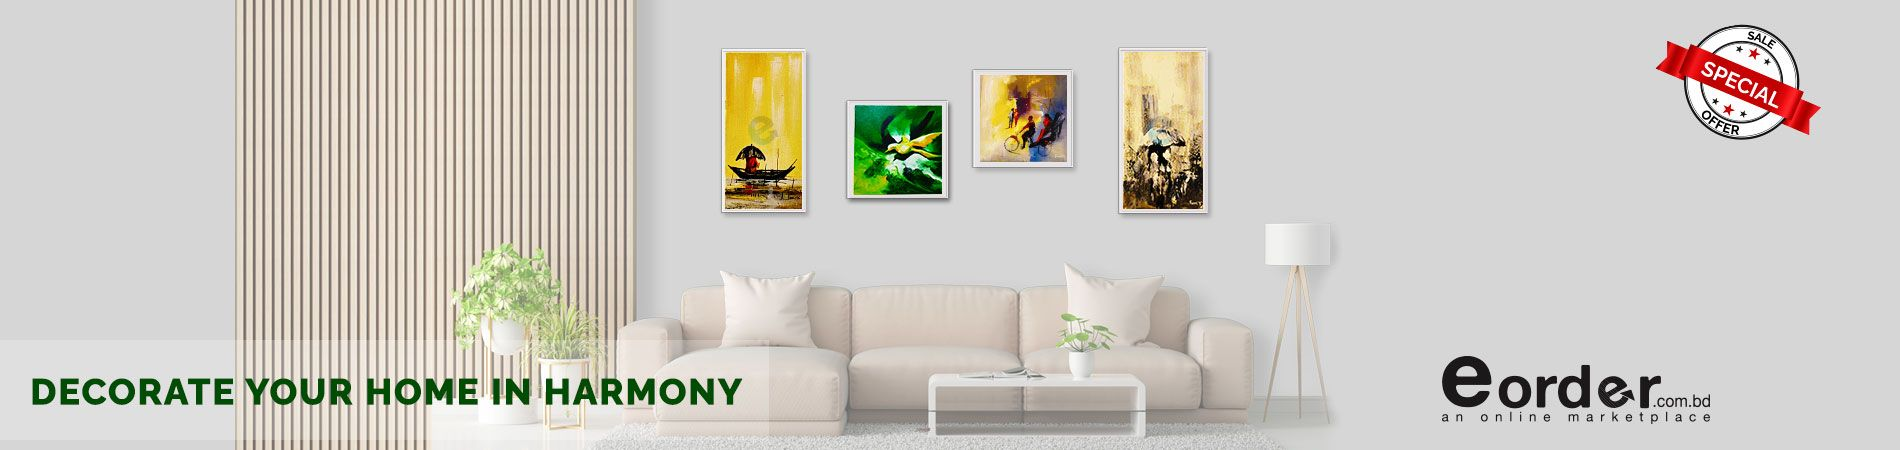 https://eorder.com.bd/fashion-lifestyle/arts-crafts/paintings.html